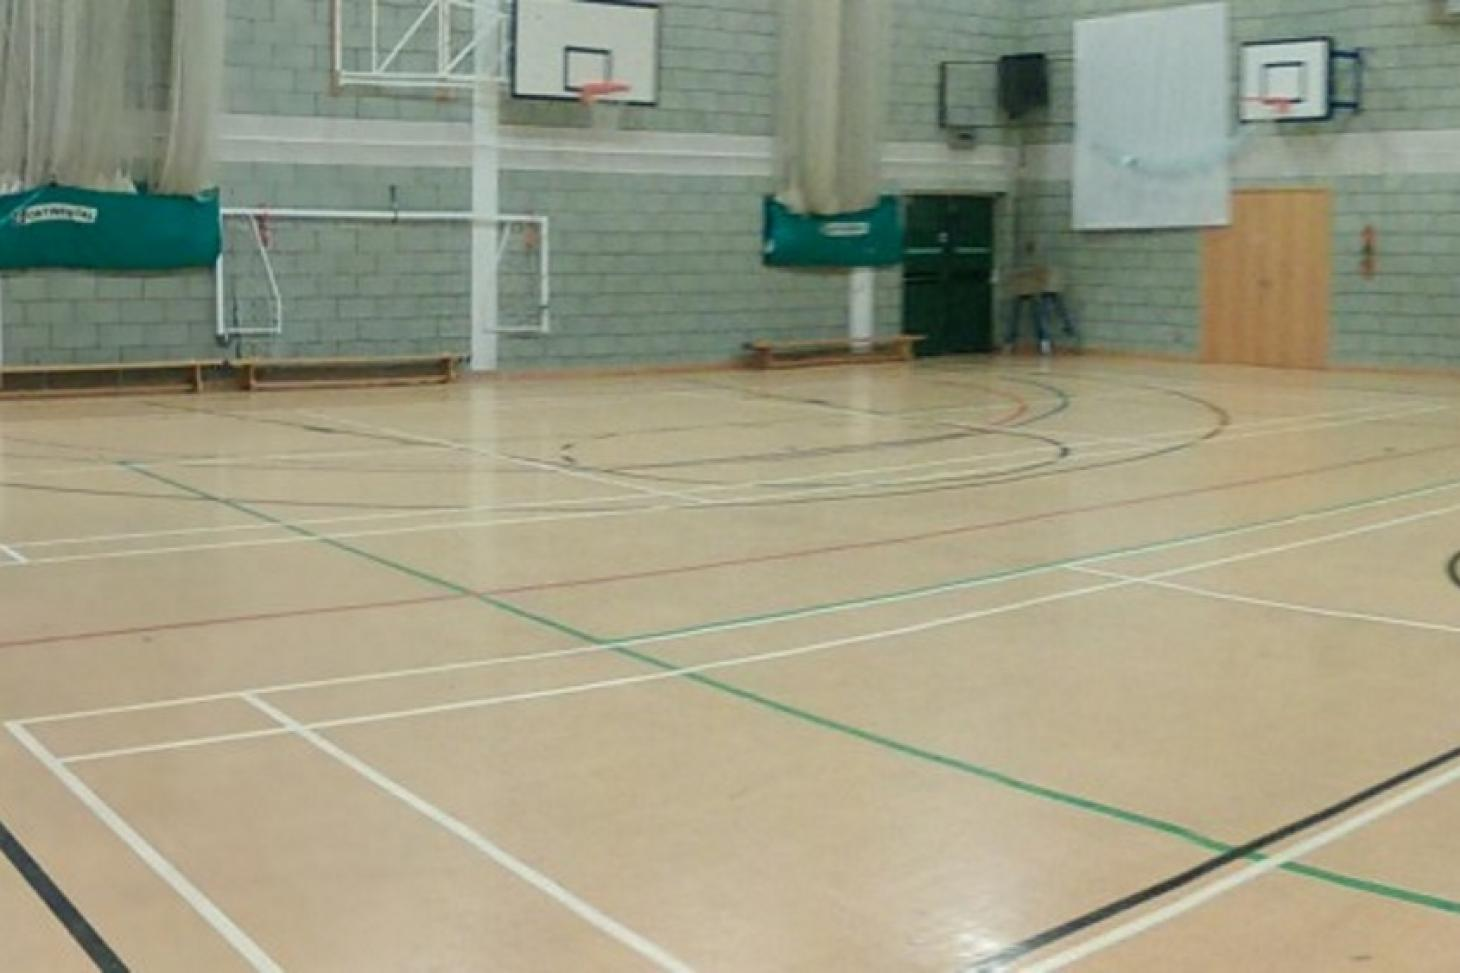 St Cecilia's Church of England School Indoor basketball court